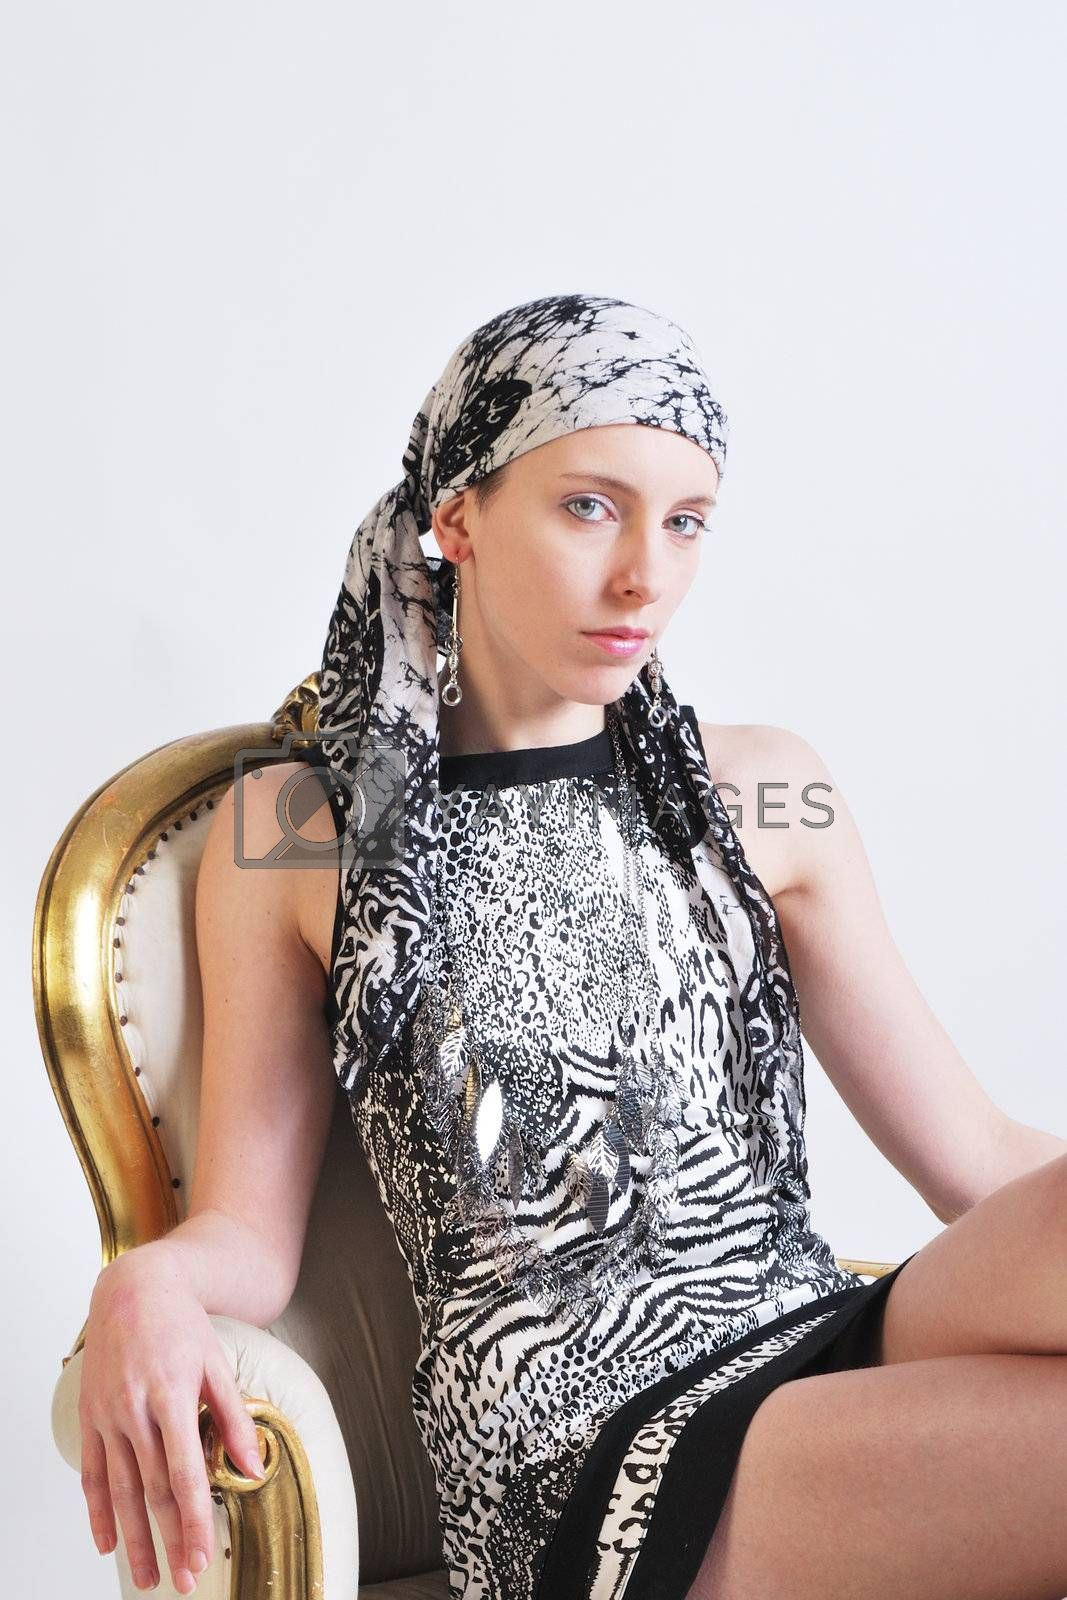 Woman in black and white dress and head scarf